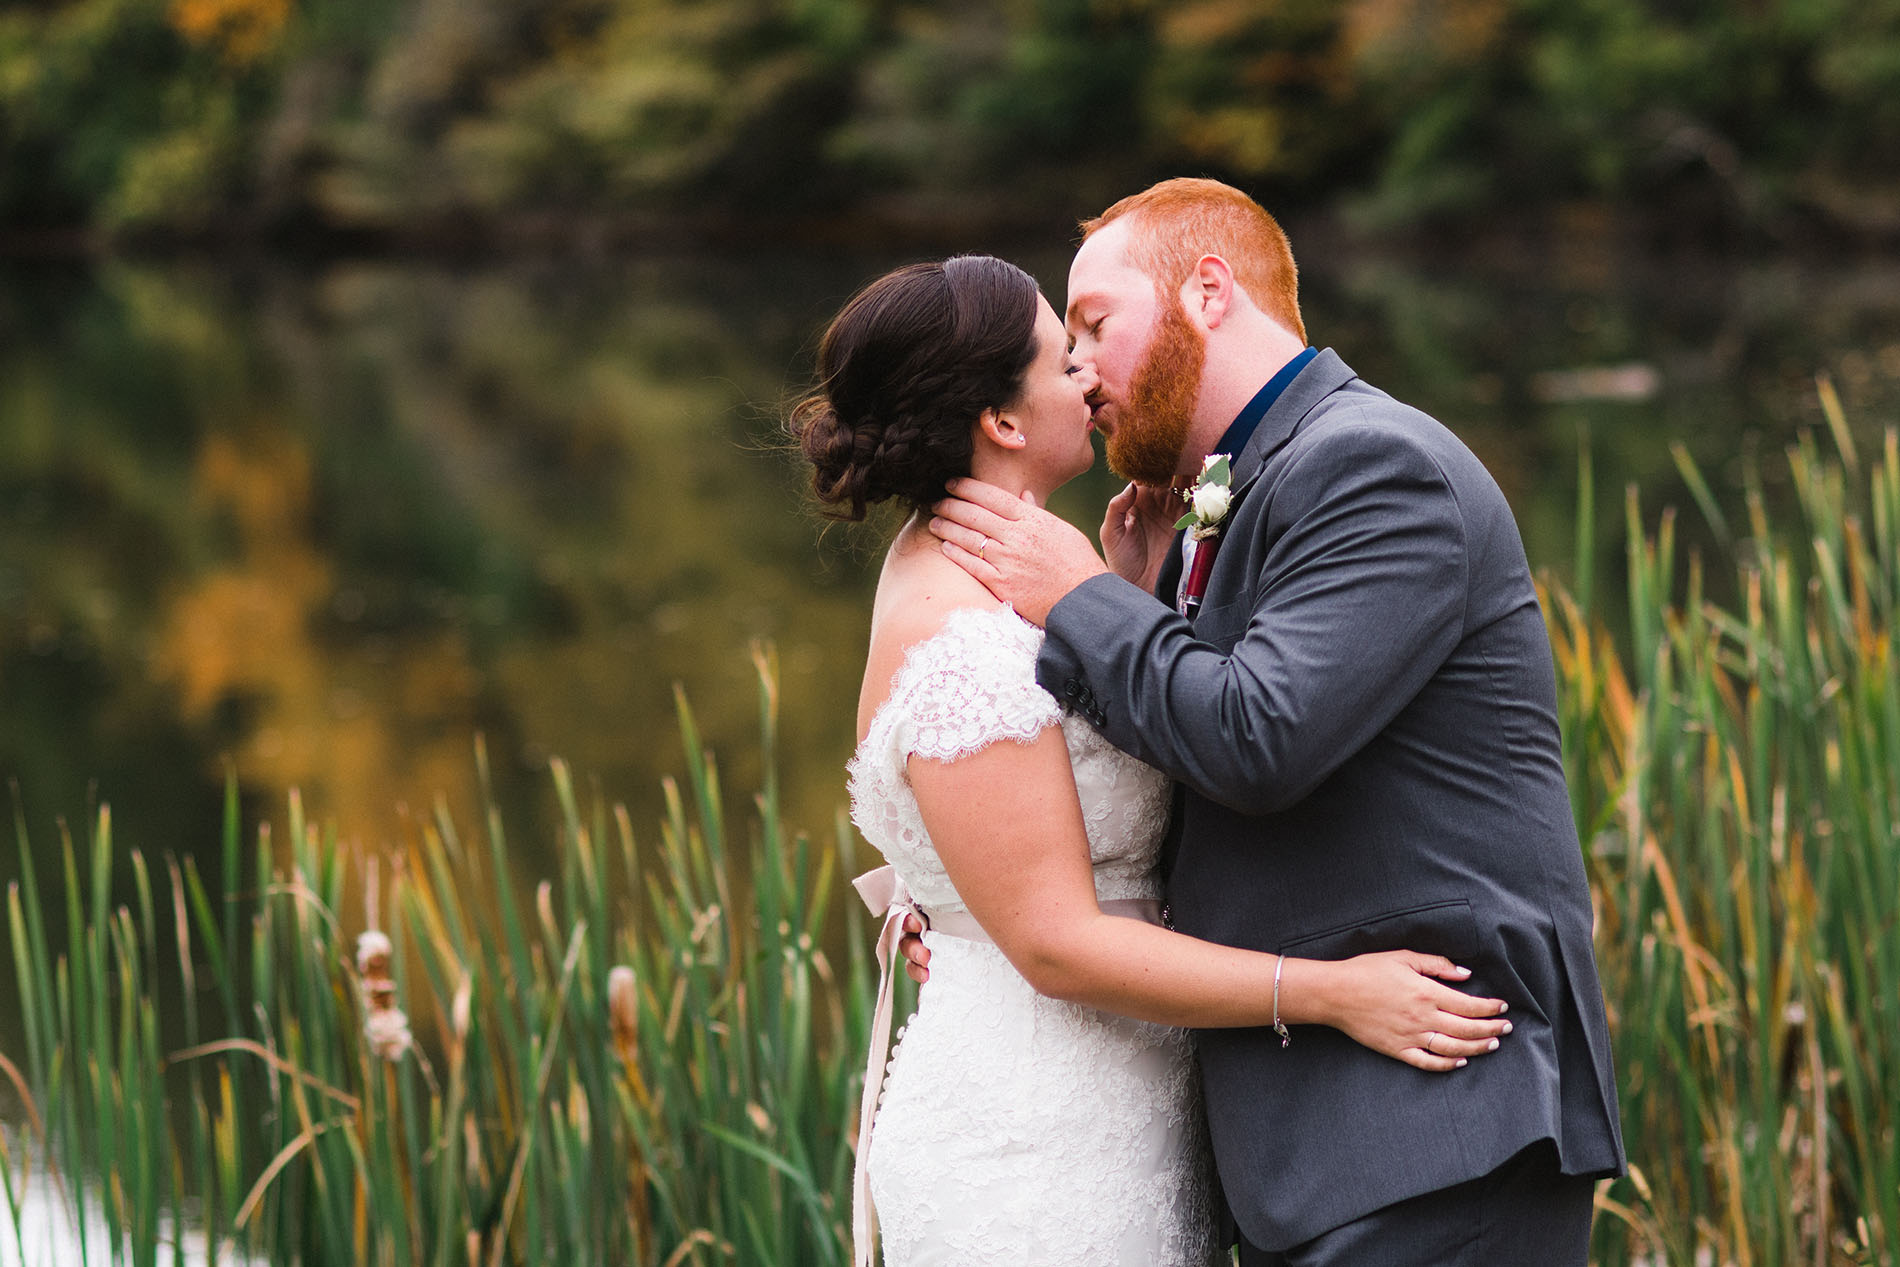 wedding photo outdoors by Jessica Svoboda